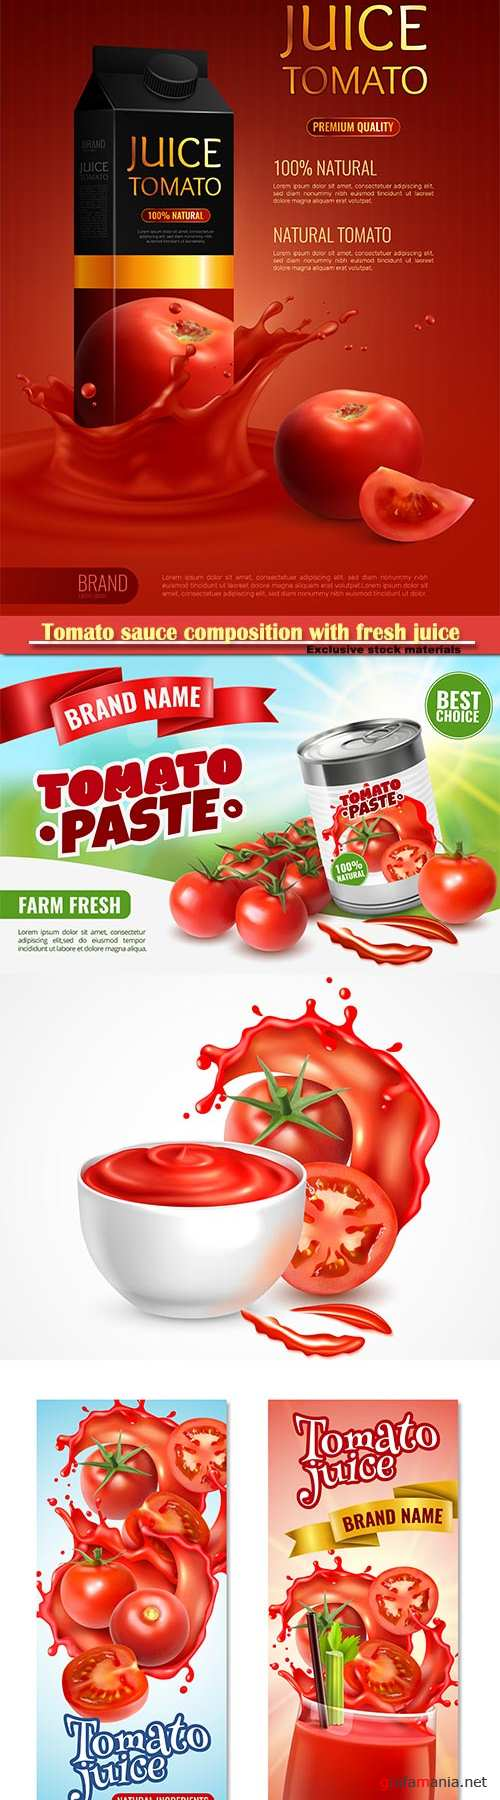 Tomato sauce composition with fresh juice vector illustration